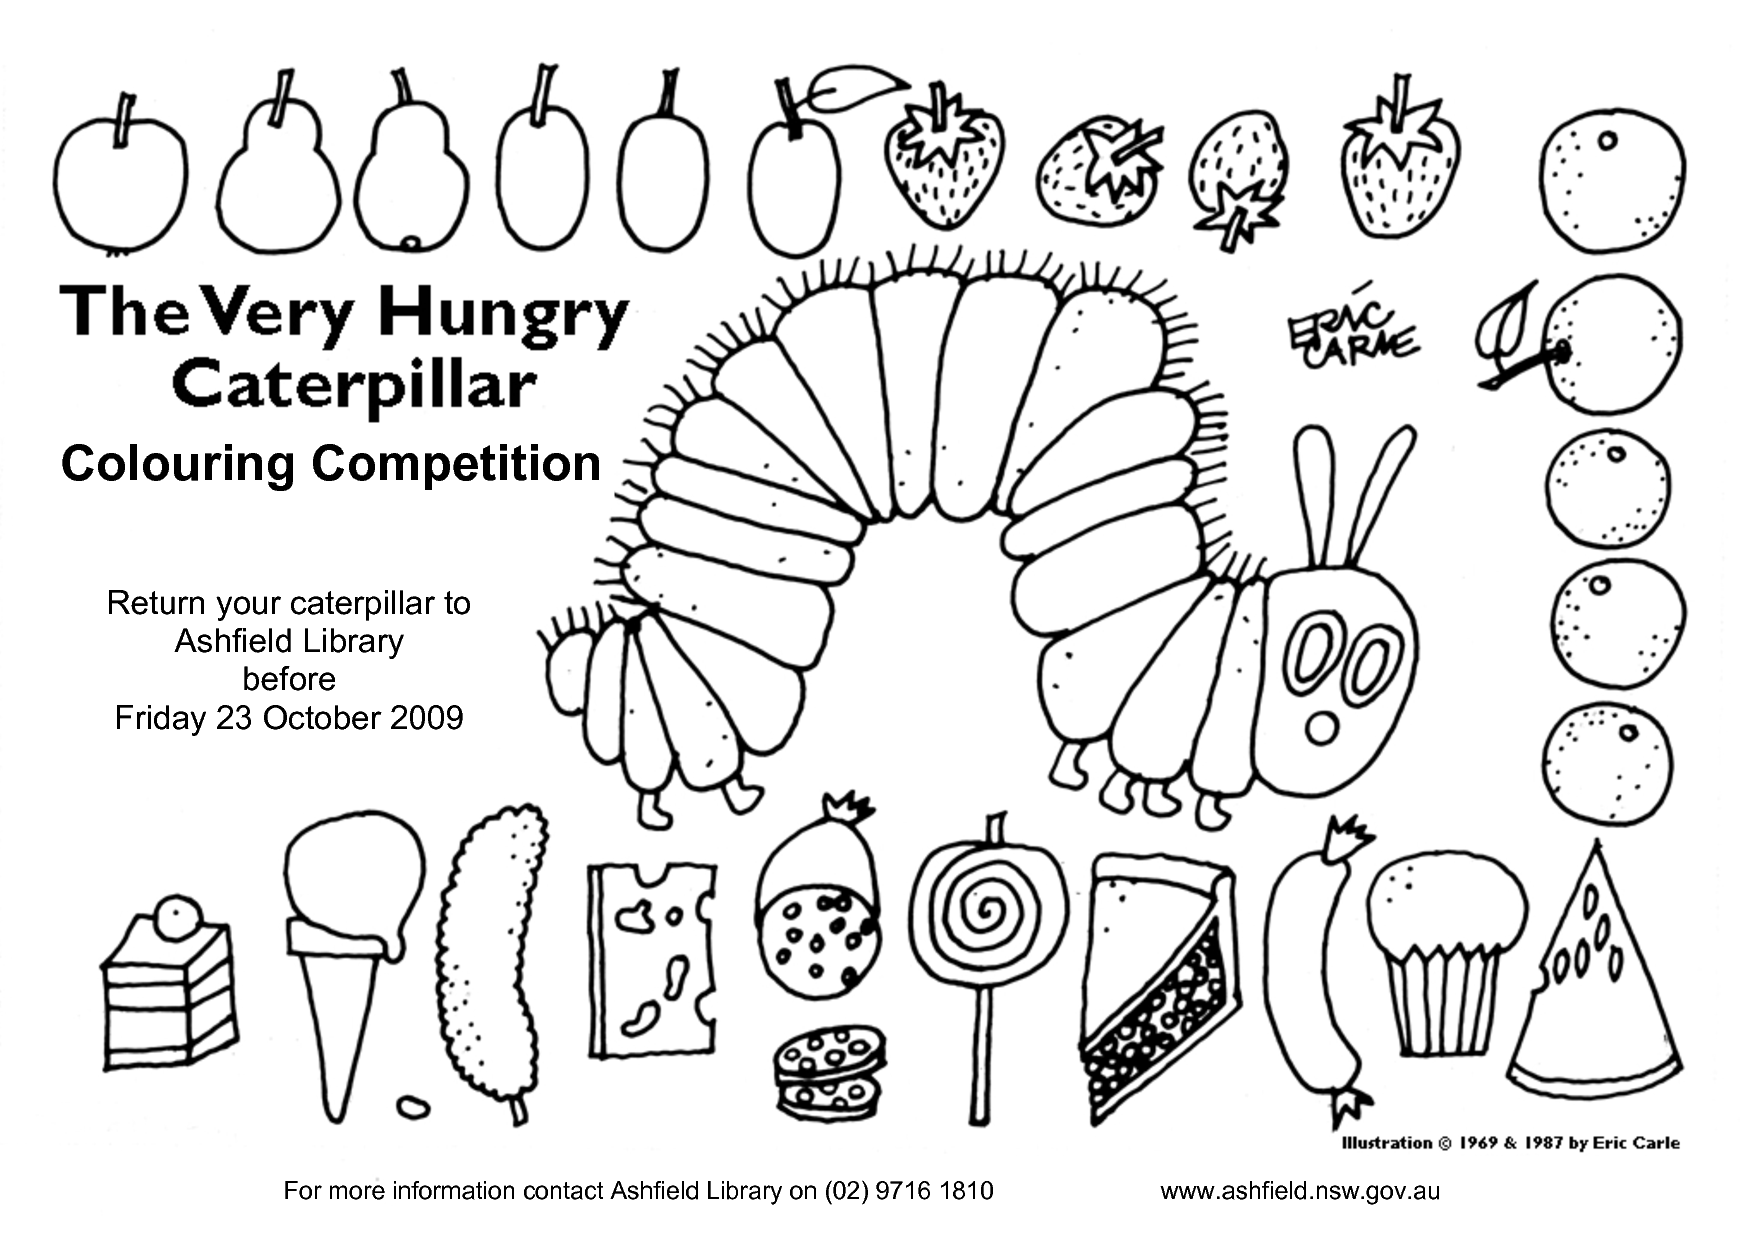 Very Hungry Caterpillar 40 Ann Colouring Competition By